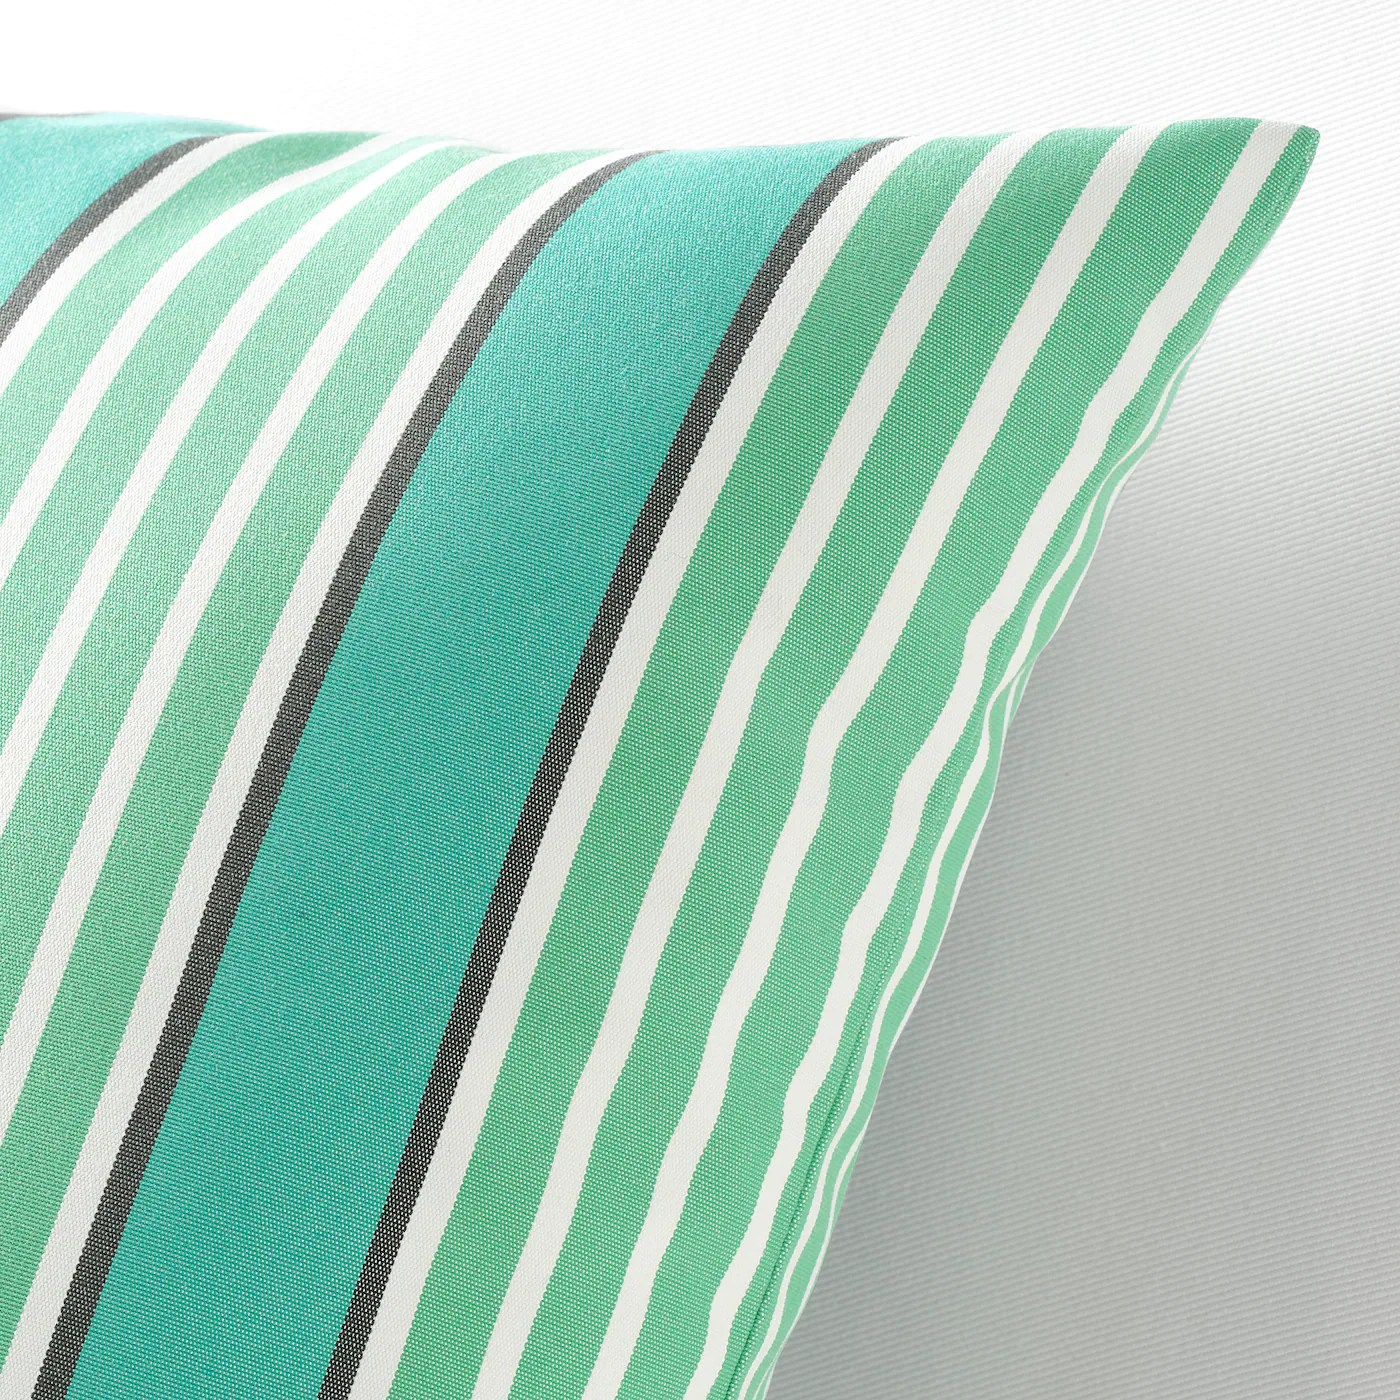 funkon cushion cover in outdoor turquoise green 20x20